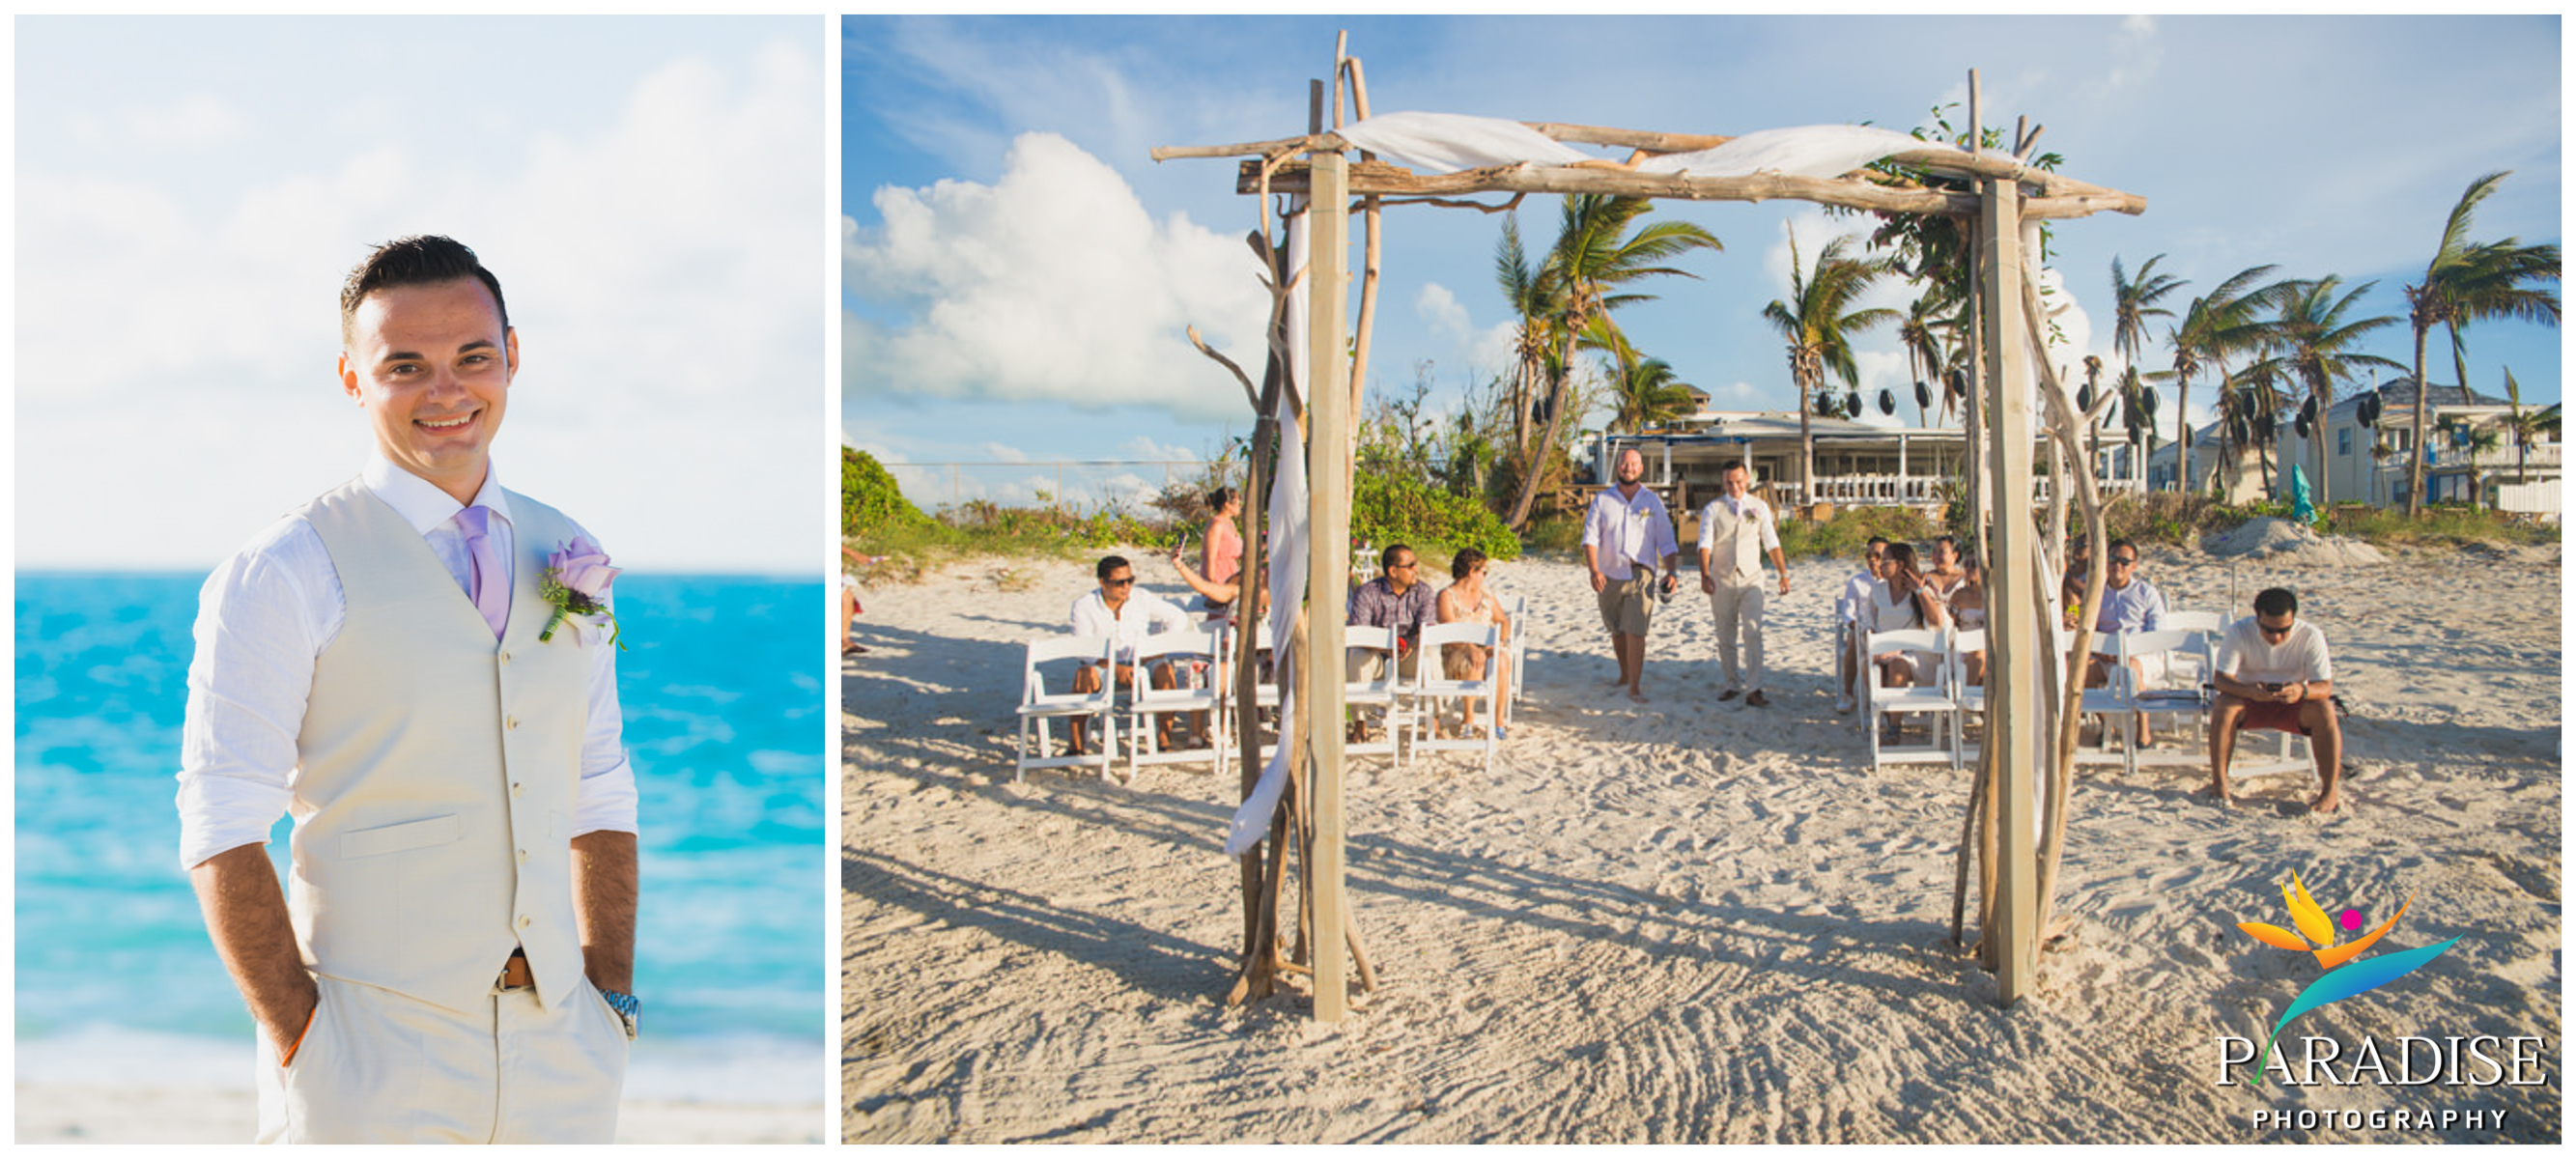 018 destination-wedding-turks-and-caicos-nila-planner-island-caribbean-somerset-bay-bistro-grace-bay-beach